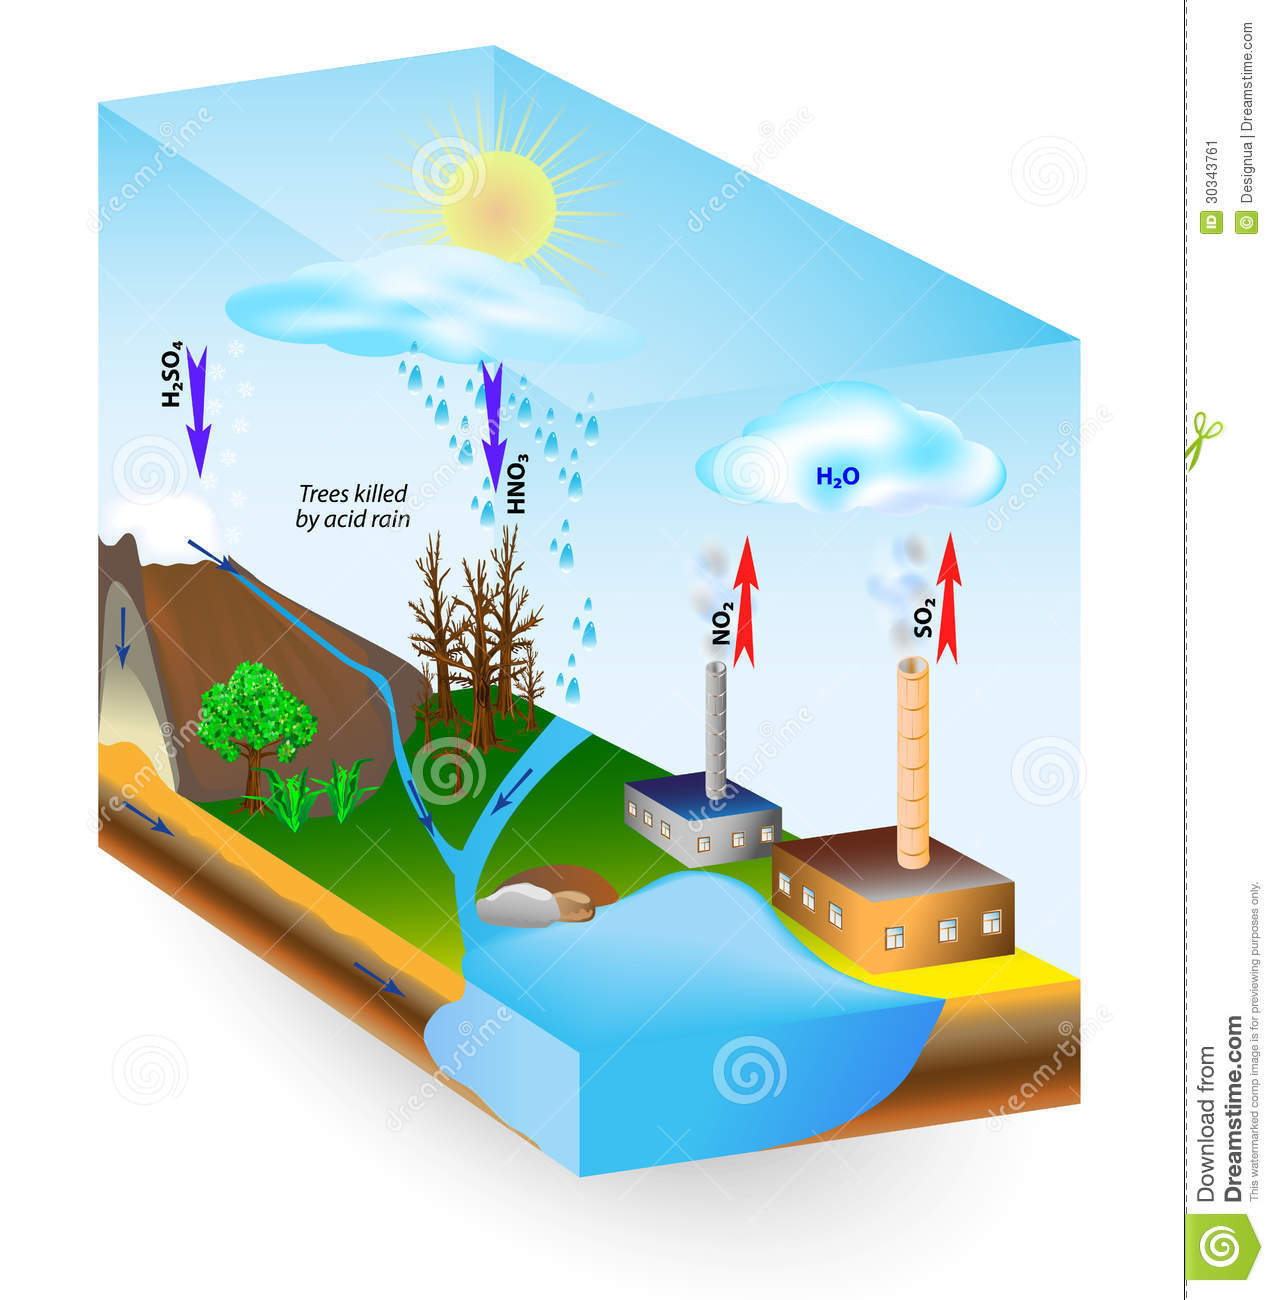 hight resolution of acid rain is caused by emissions of sulfur dioxide and nitrogen oxide which react with the water molecules in the atmosphere to produce acids low ph